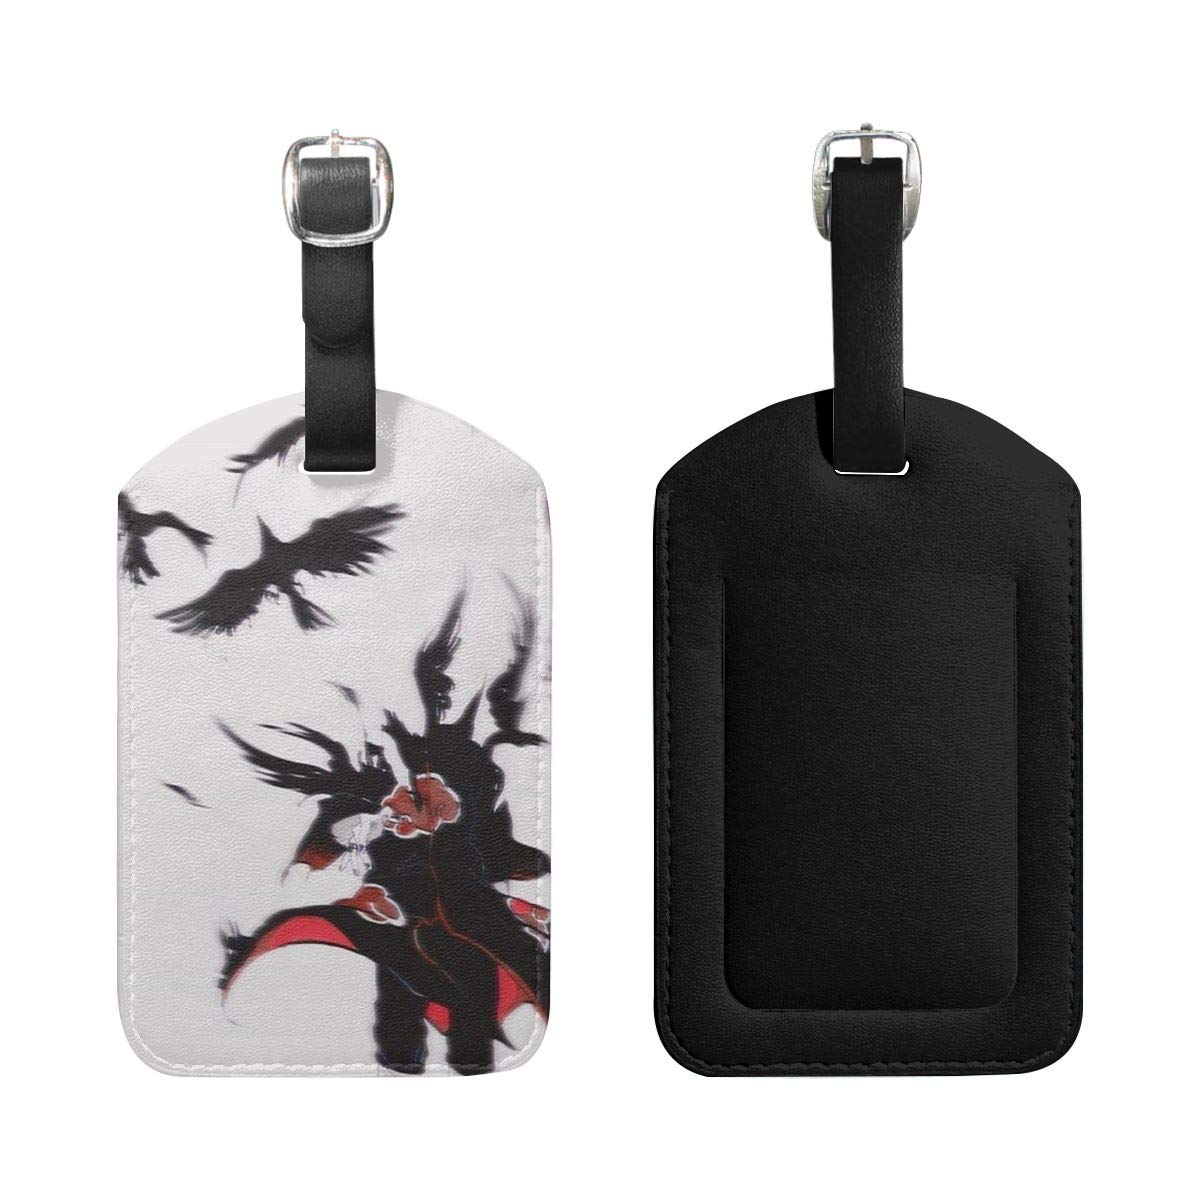 Set of 2 PU Leather Luggage Tags Uchiha Itachi Suitcase Labels Bag Adjustable Leather Strap Travel Accessories